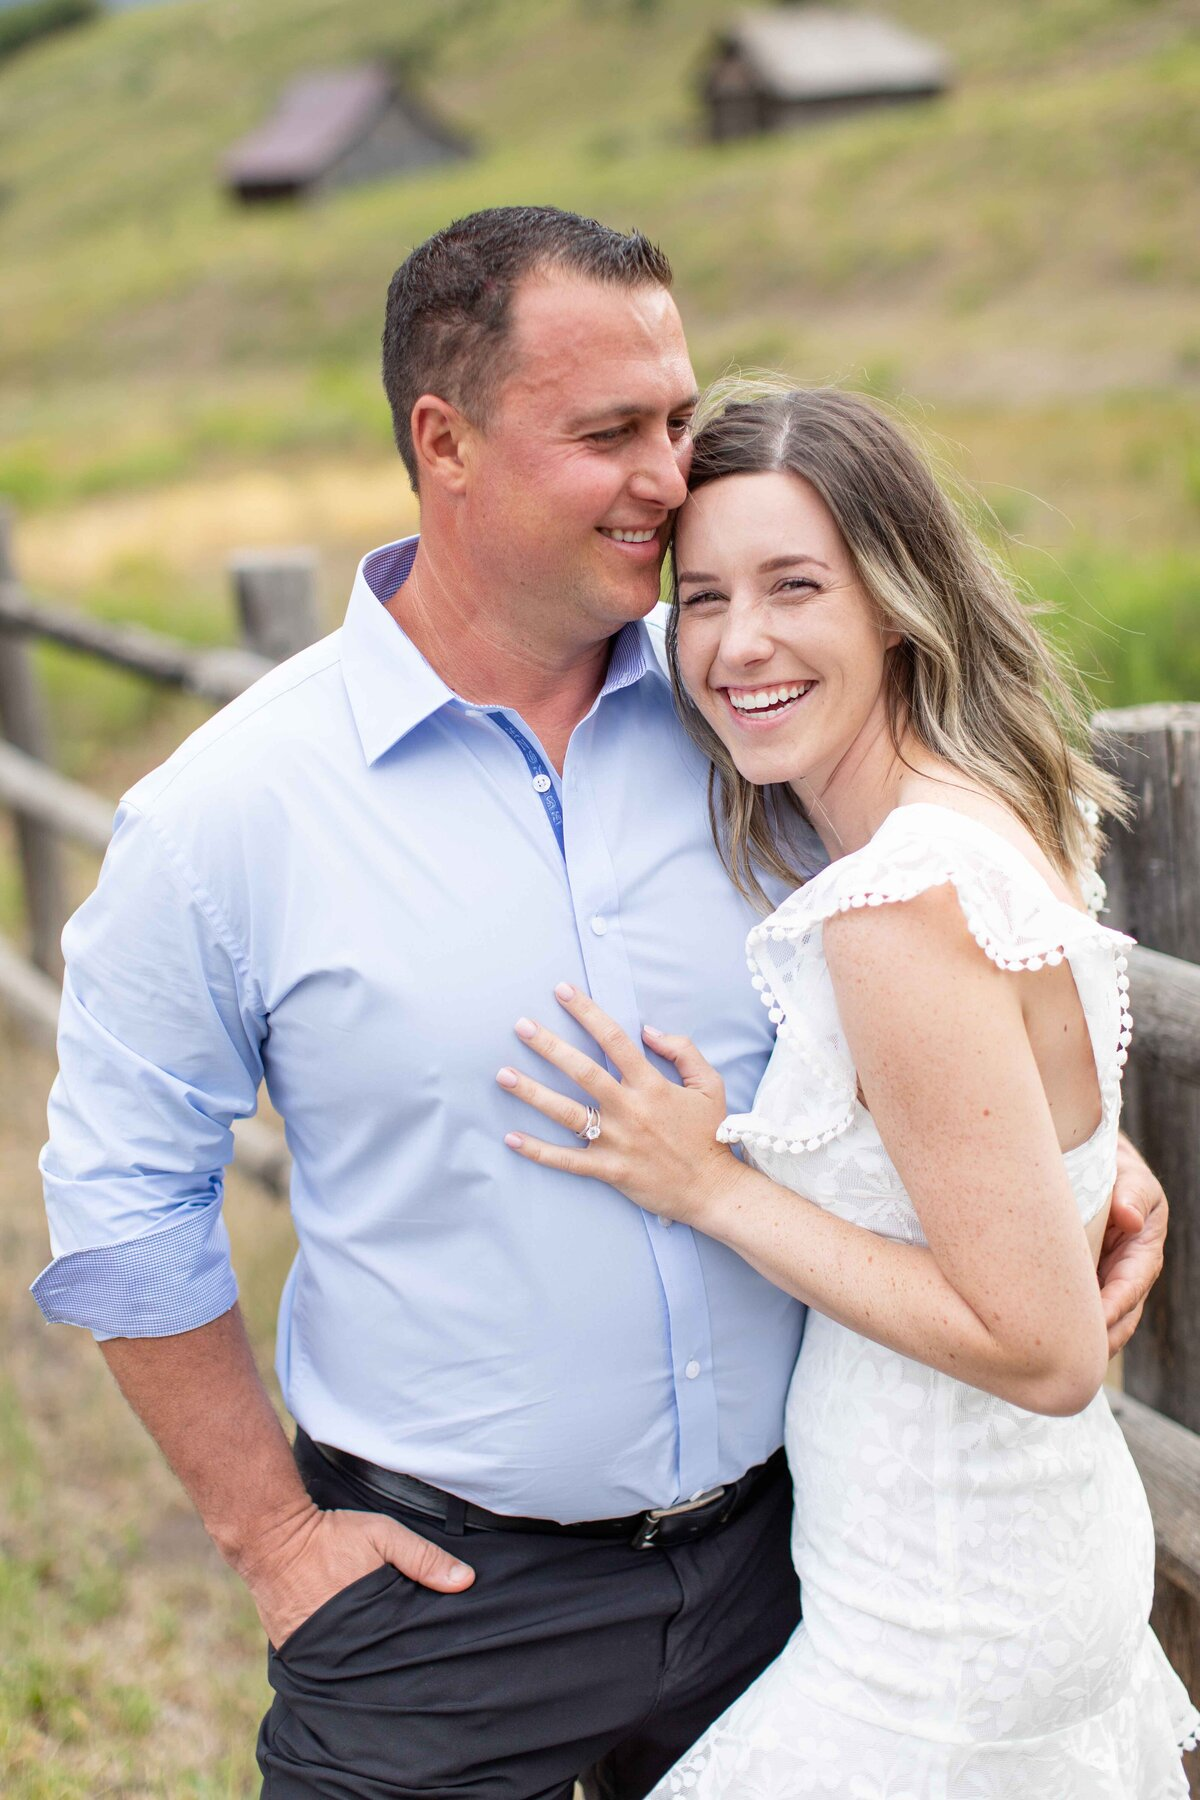 Telluride engagement photographer | Lisa Marie Wright Photography